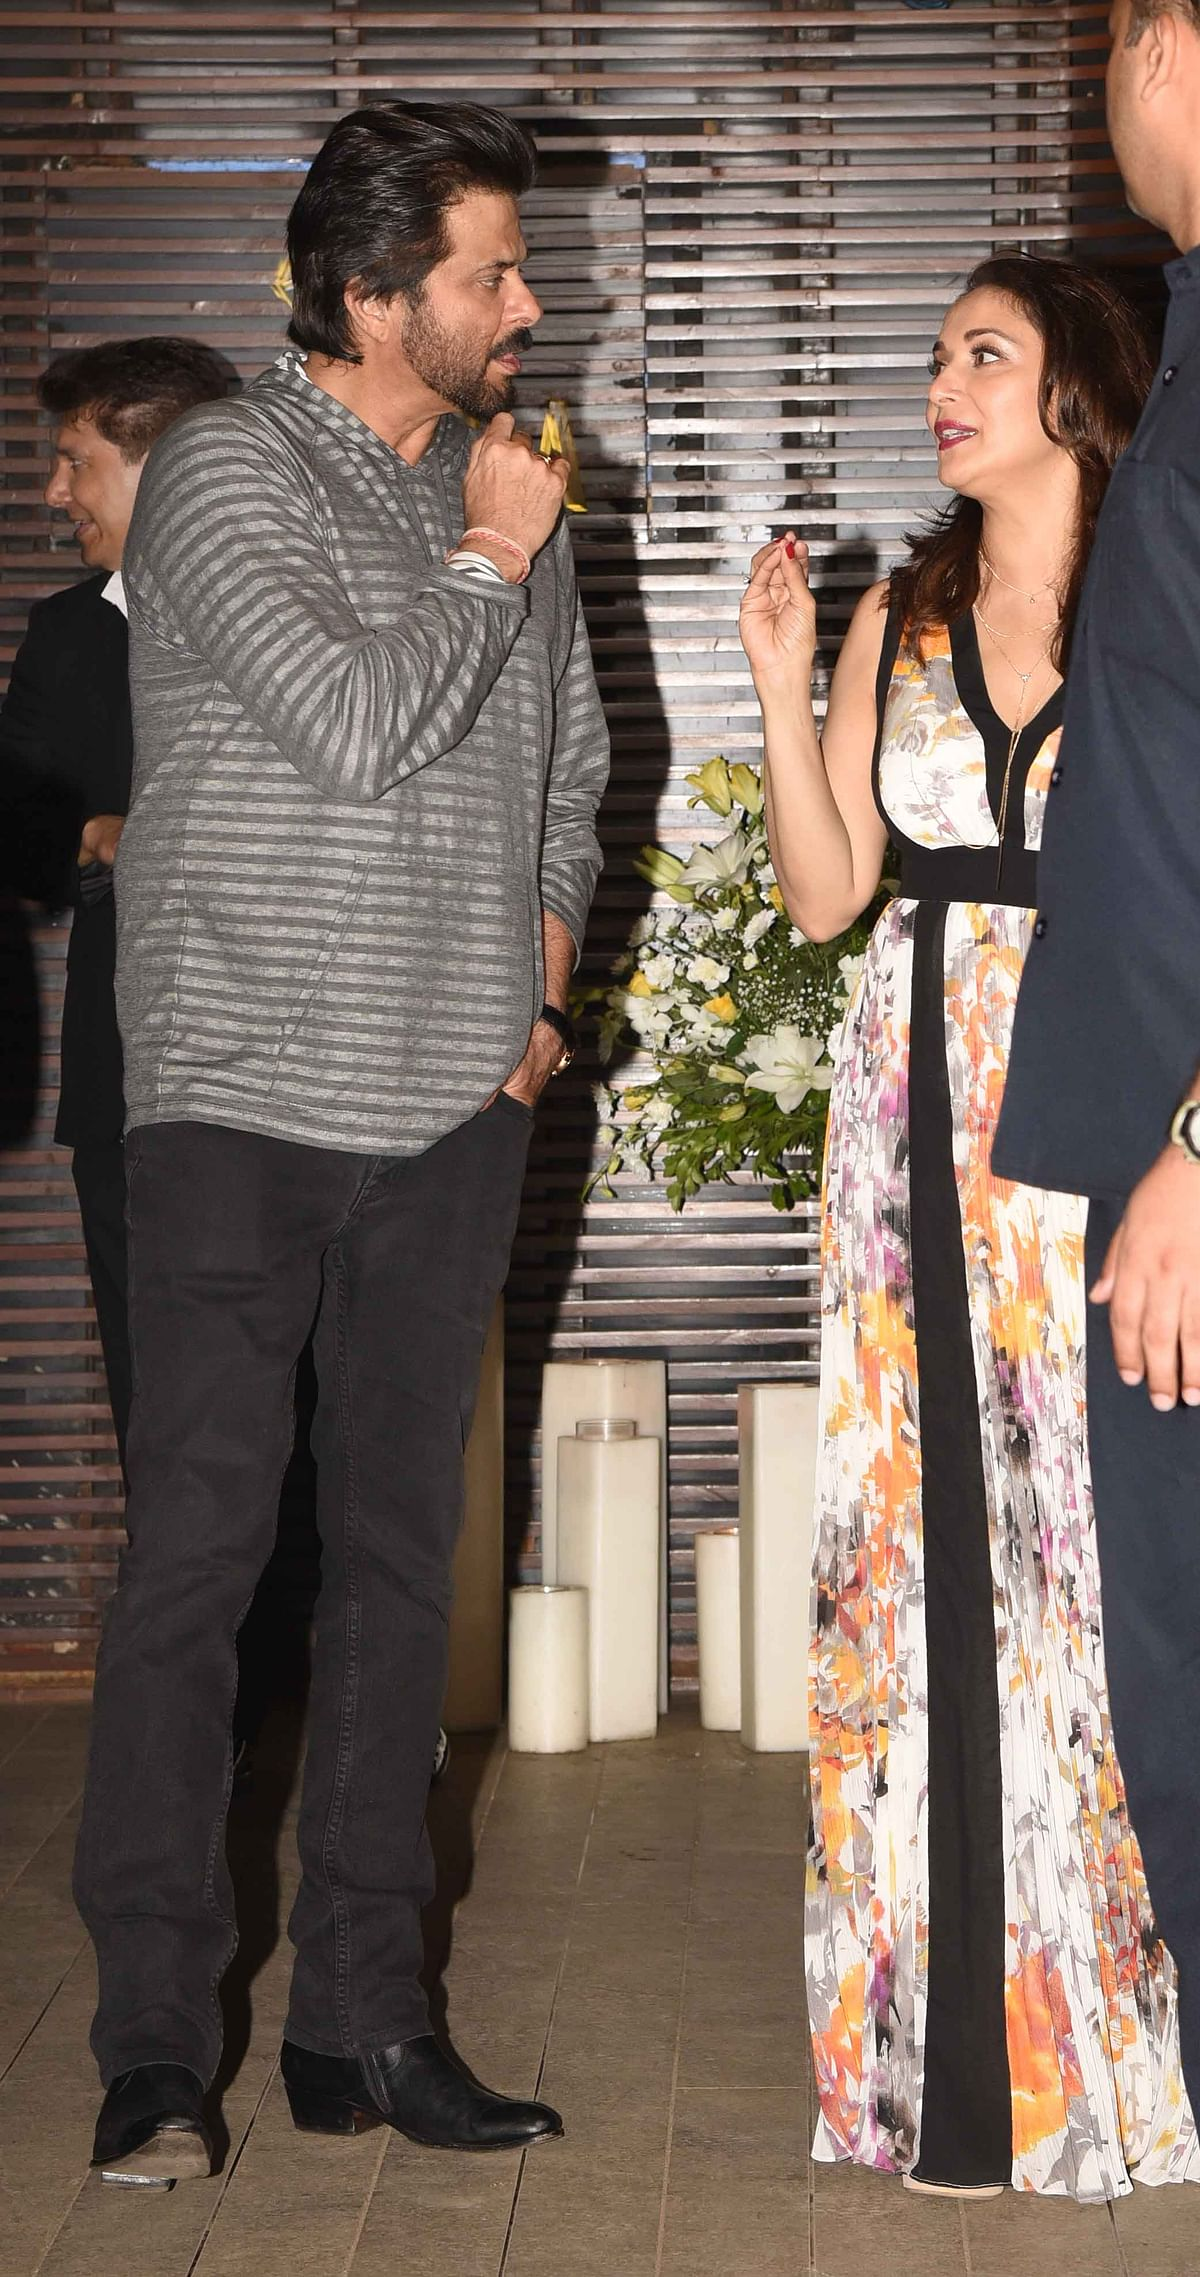 Old friends Madhuri Dixit and Anil Kapoor catch up. (Photo: Yogen Shah)